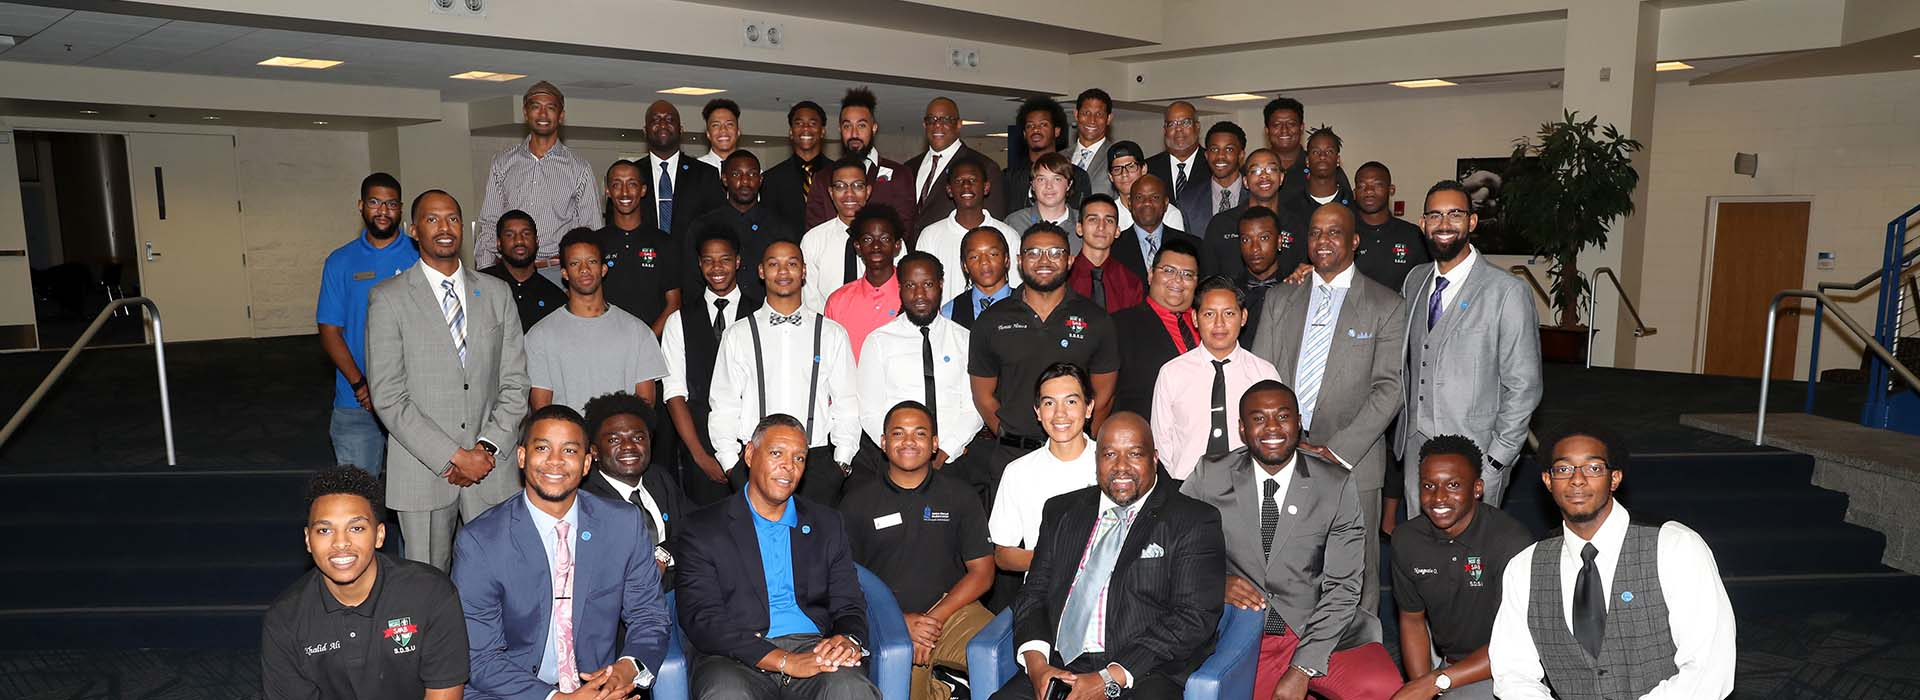 Student African American Brotherhood Conference held at CSUSB